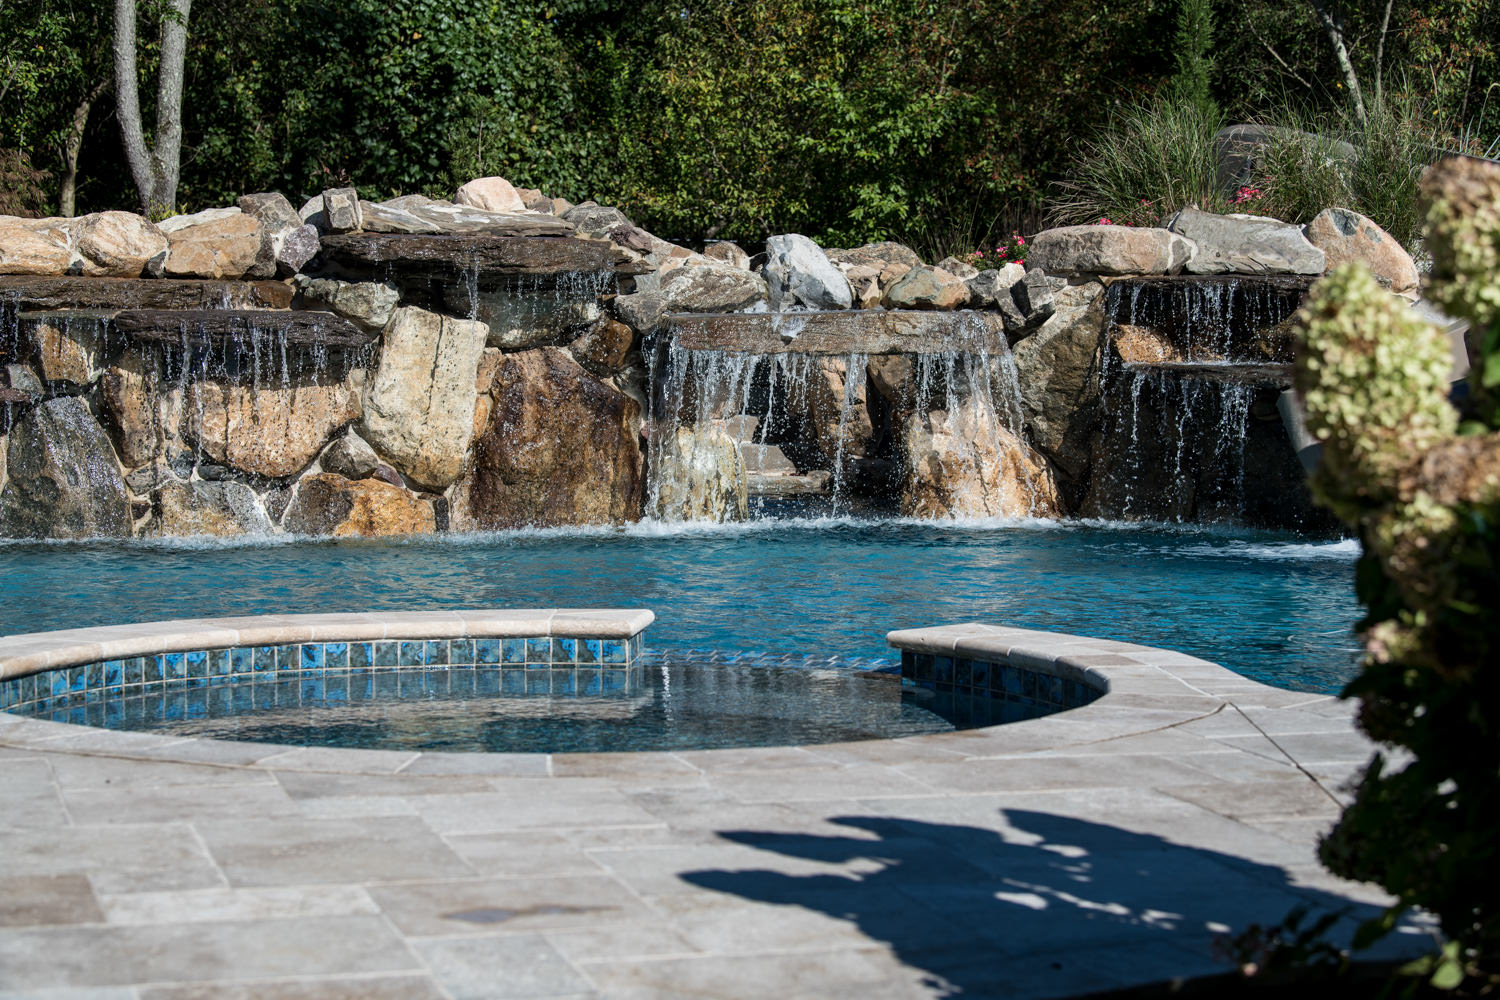 4-Custom-Pool-Design-Pennington-NJ-K-and-C-Land-Design.jpg